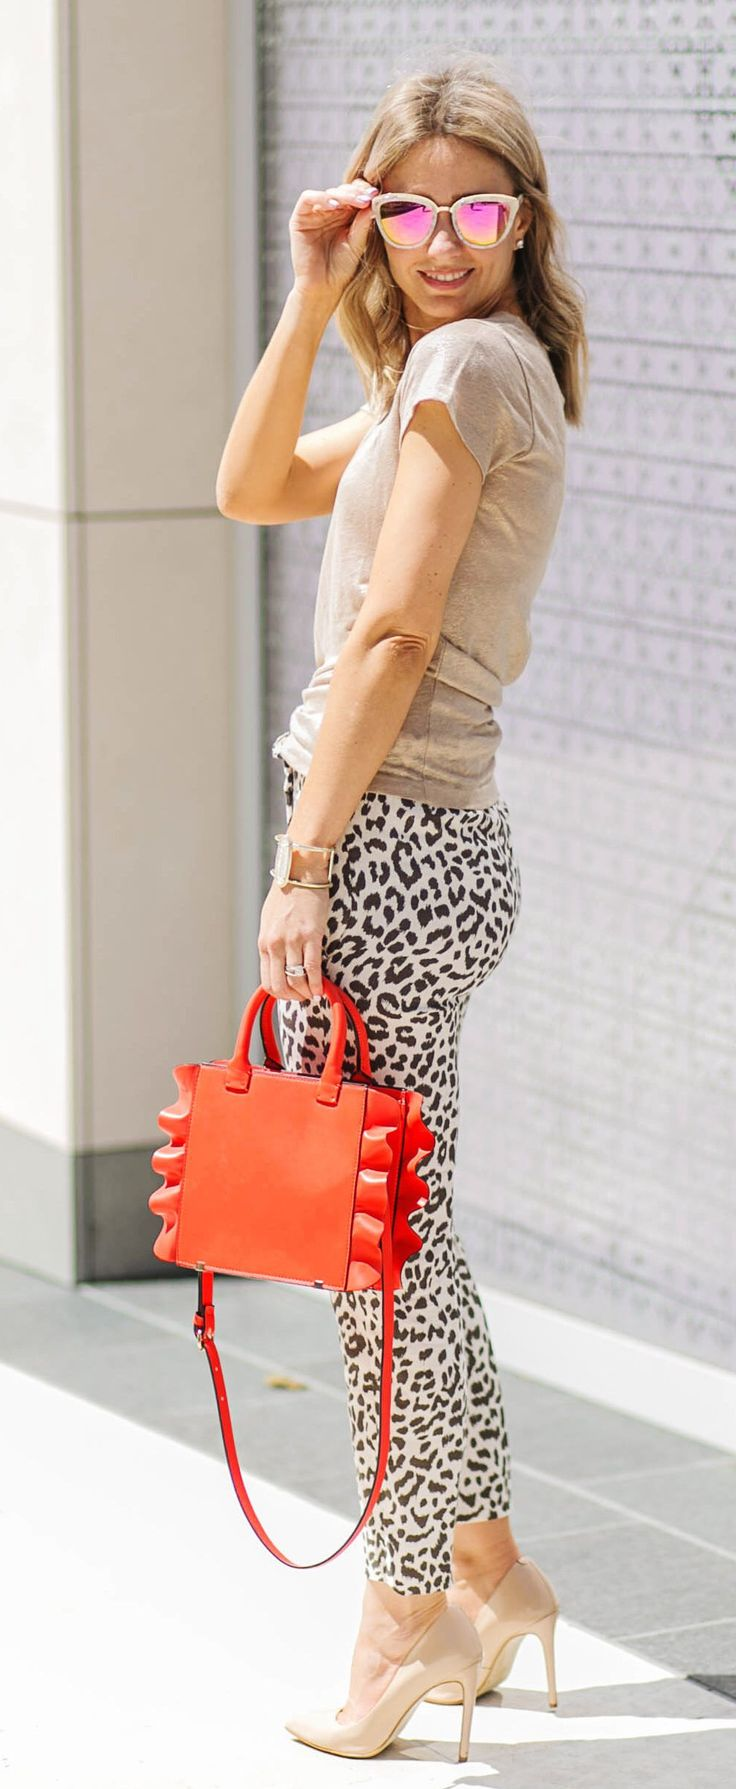 #summer #outfits Beige Tee + Leopard Skinny Pants + Nude Pumps + Orange Tote Bag // Shop this exact outfit in the link